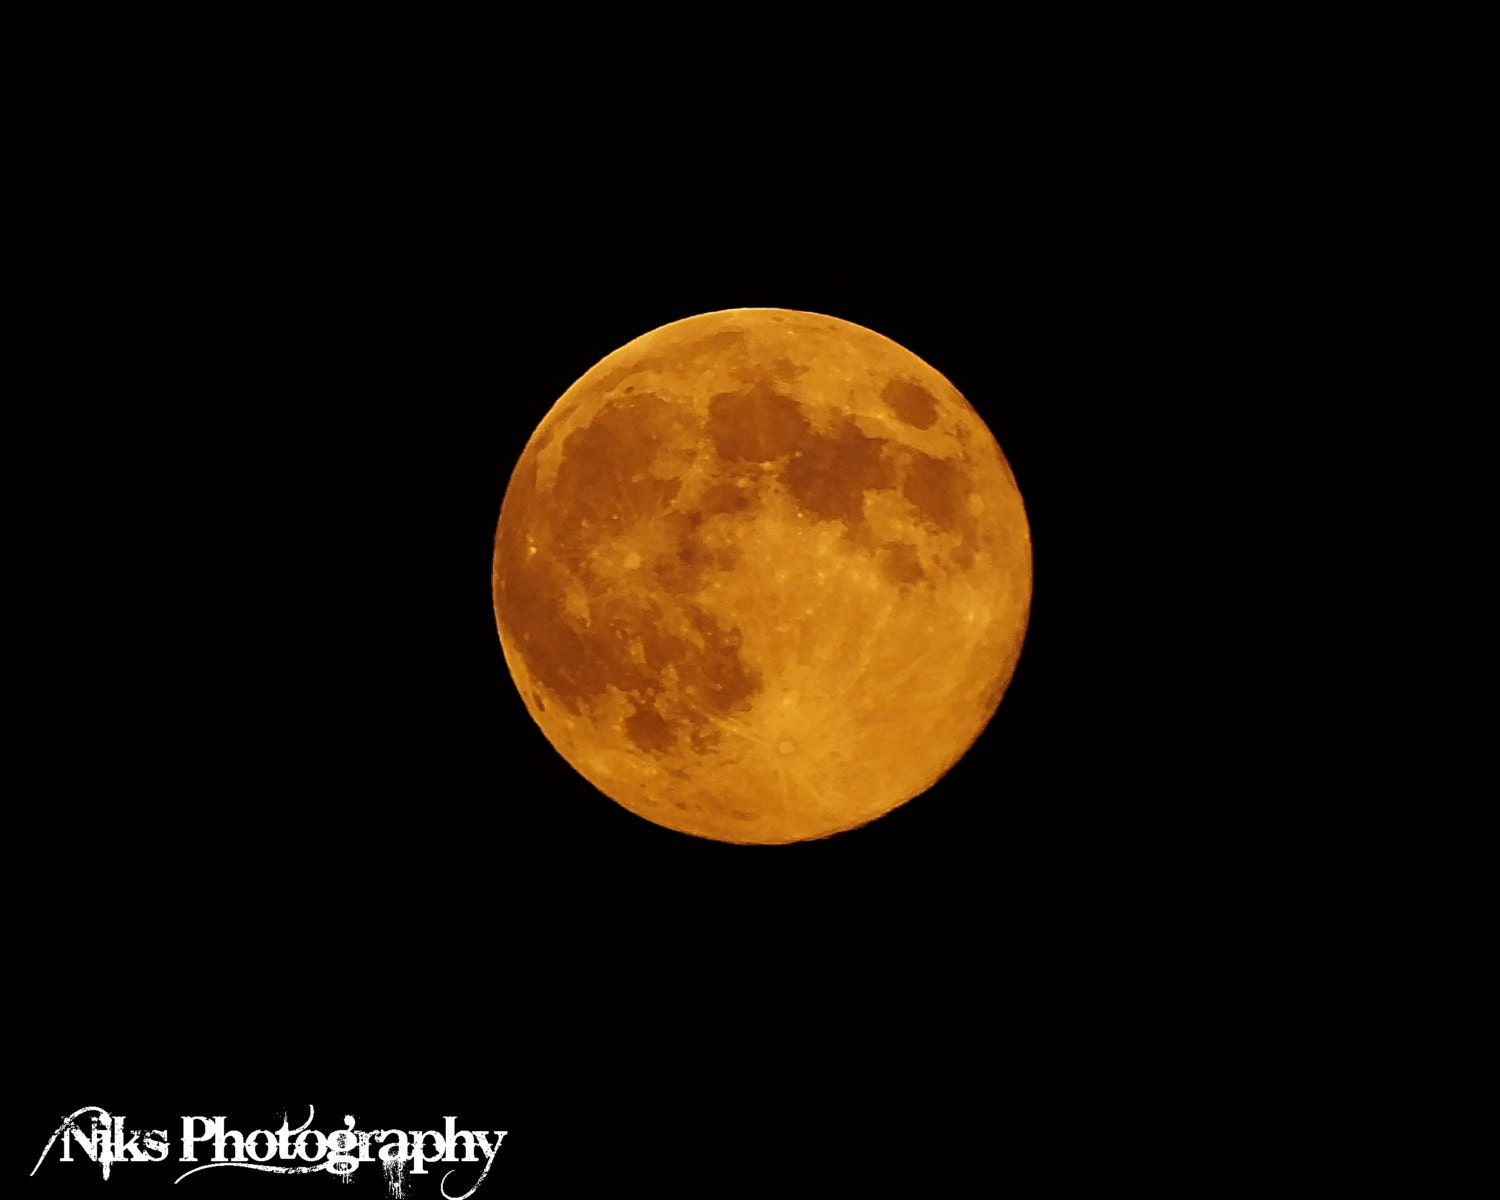 Harvest  Moon Halloween Photograph Night Skyscape Photo Orange Full Moon Lunar Picture Decor Digital Download File Instant - NiksPhotography